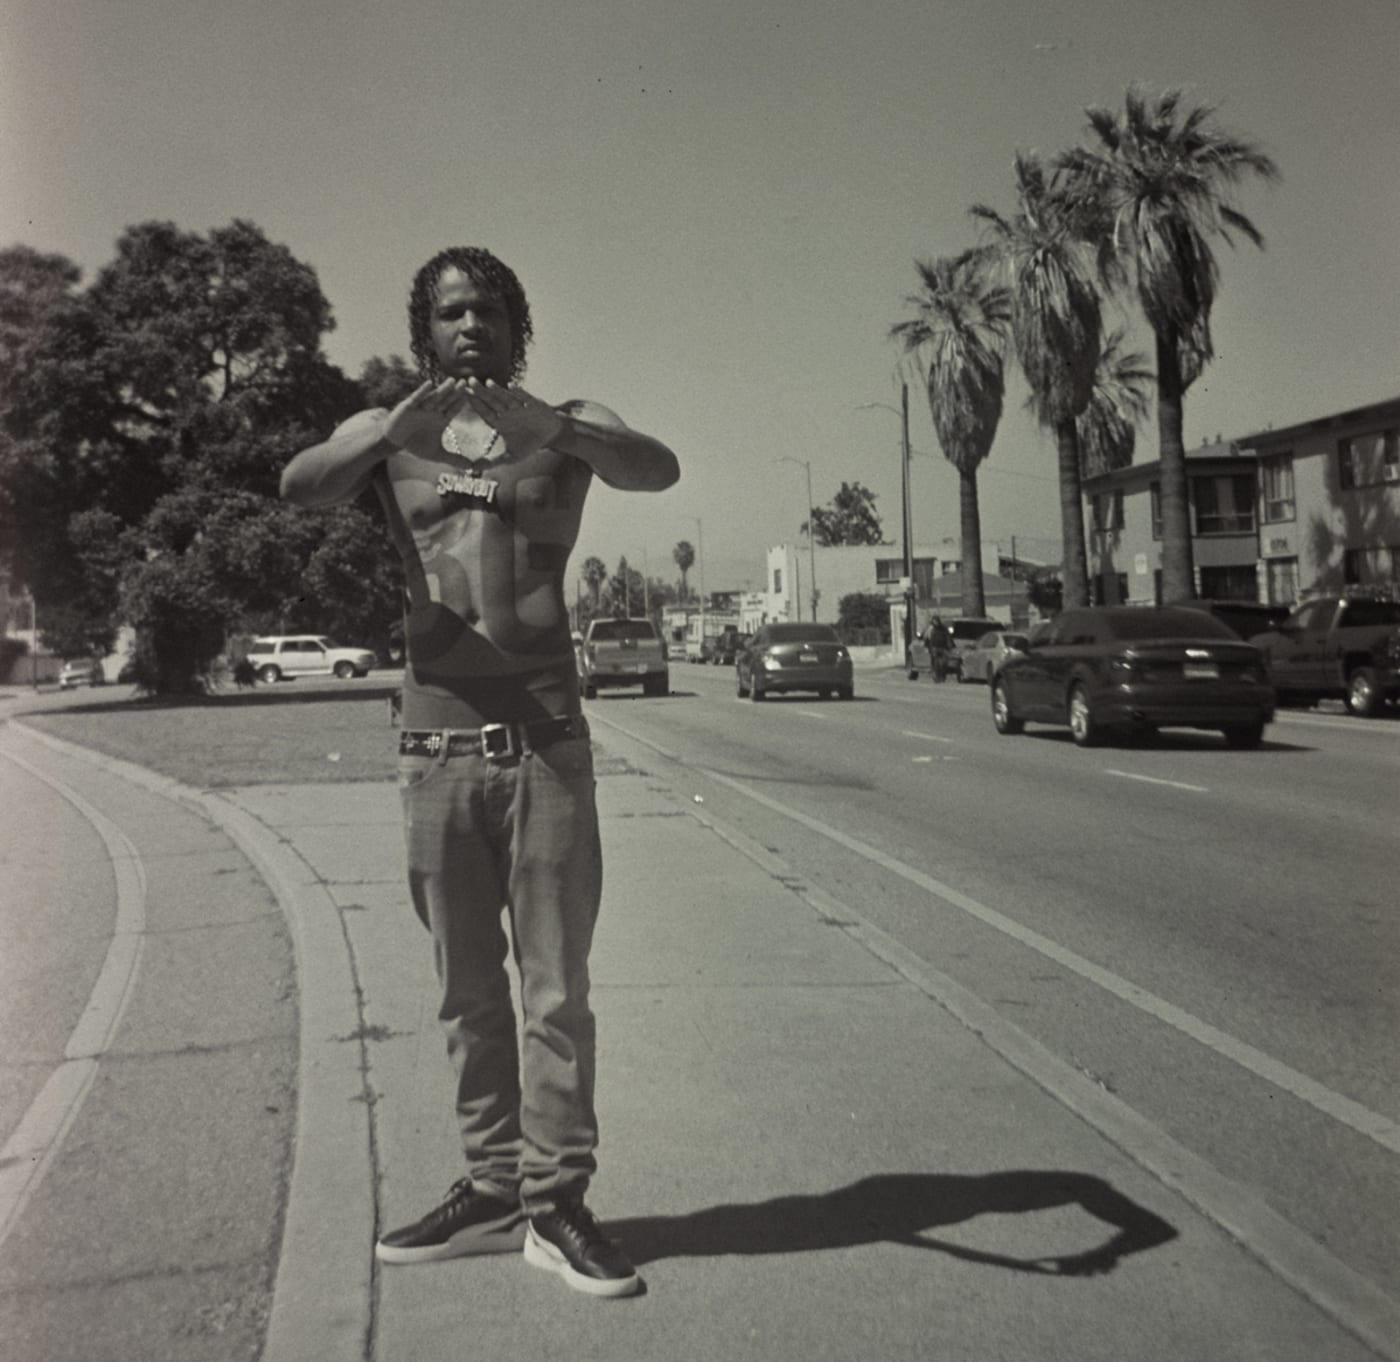 G Perico photographed by Tehron Porter